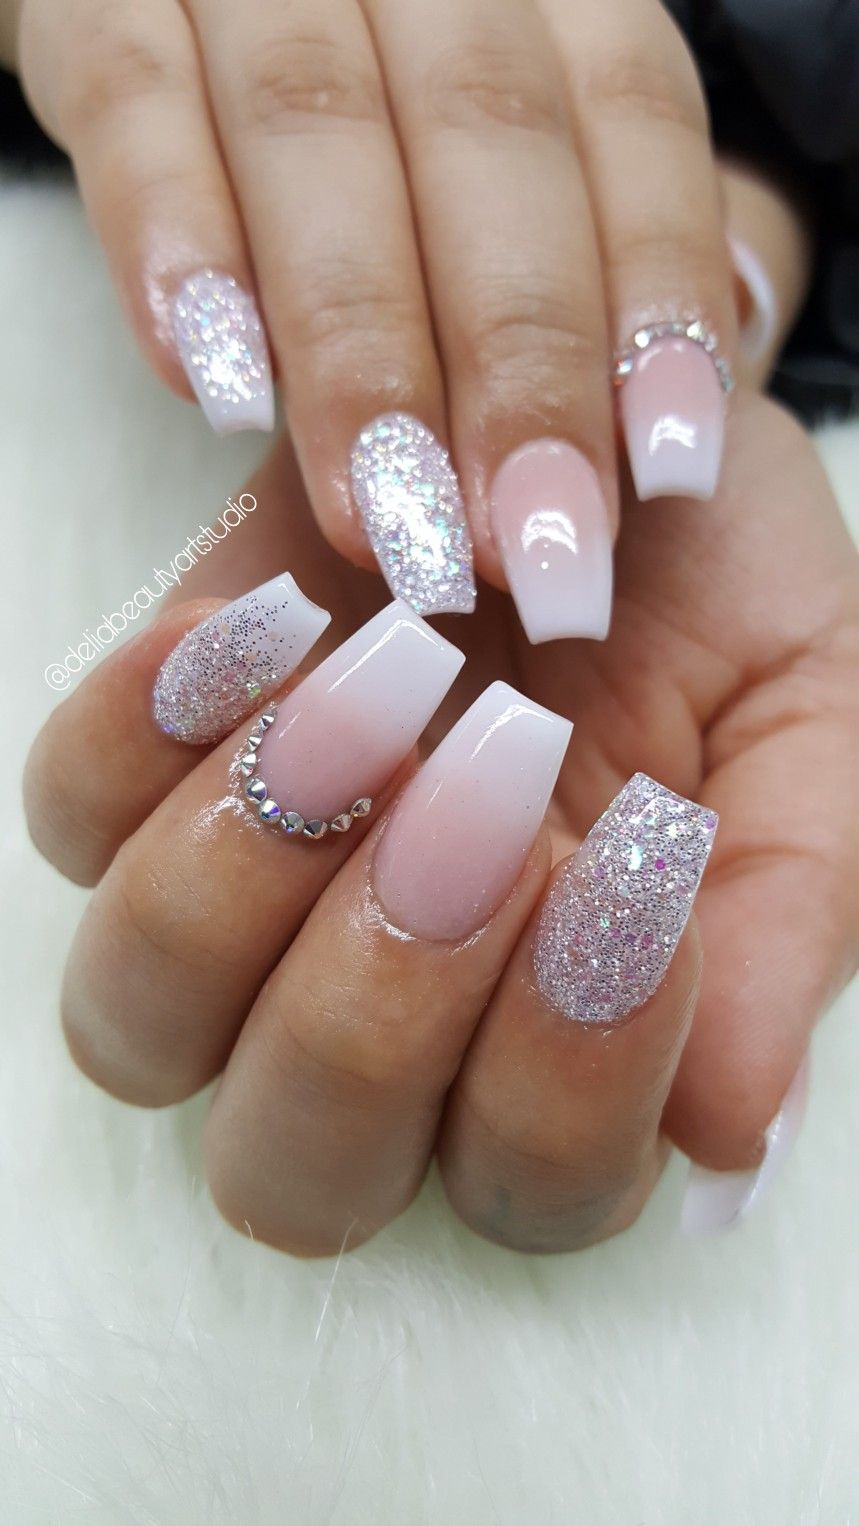 Ombre acrylic nails, coffin shape | acrylics | Pinterest | Ombre ...